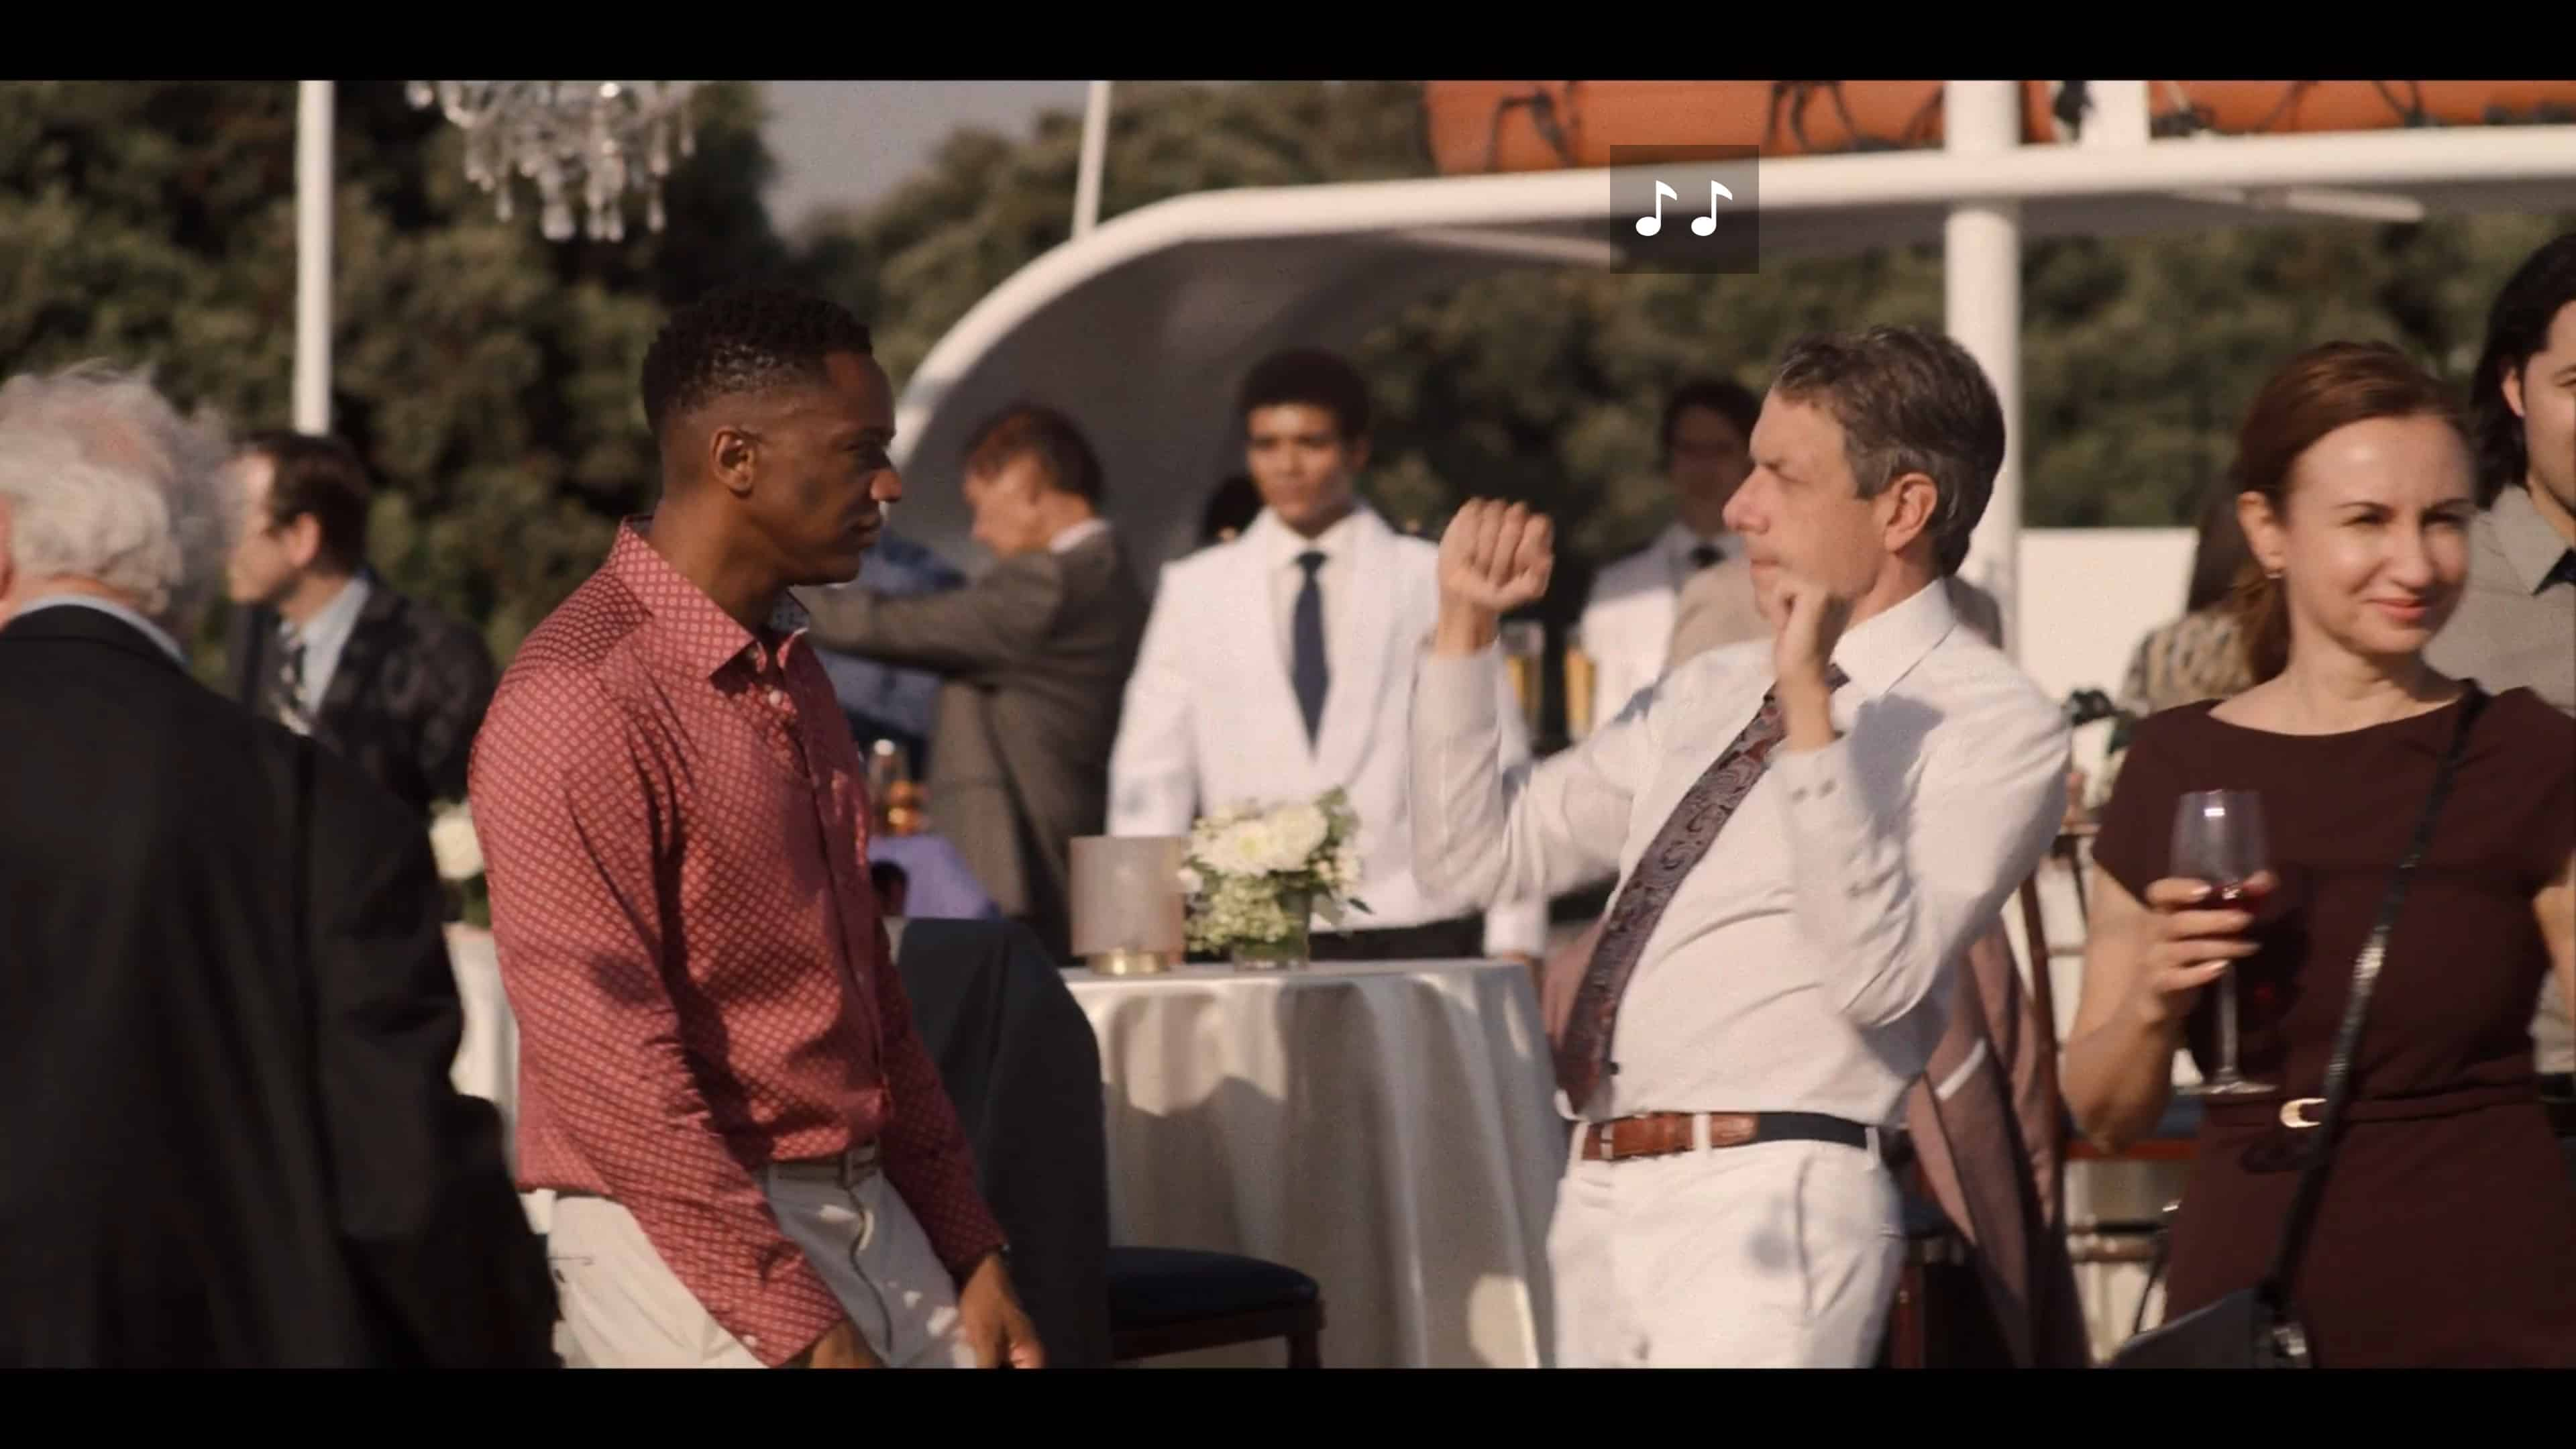 Joe (J. August Richards) and Patrick dancing